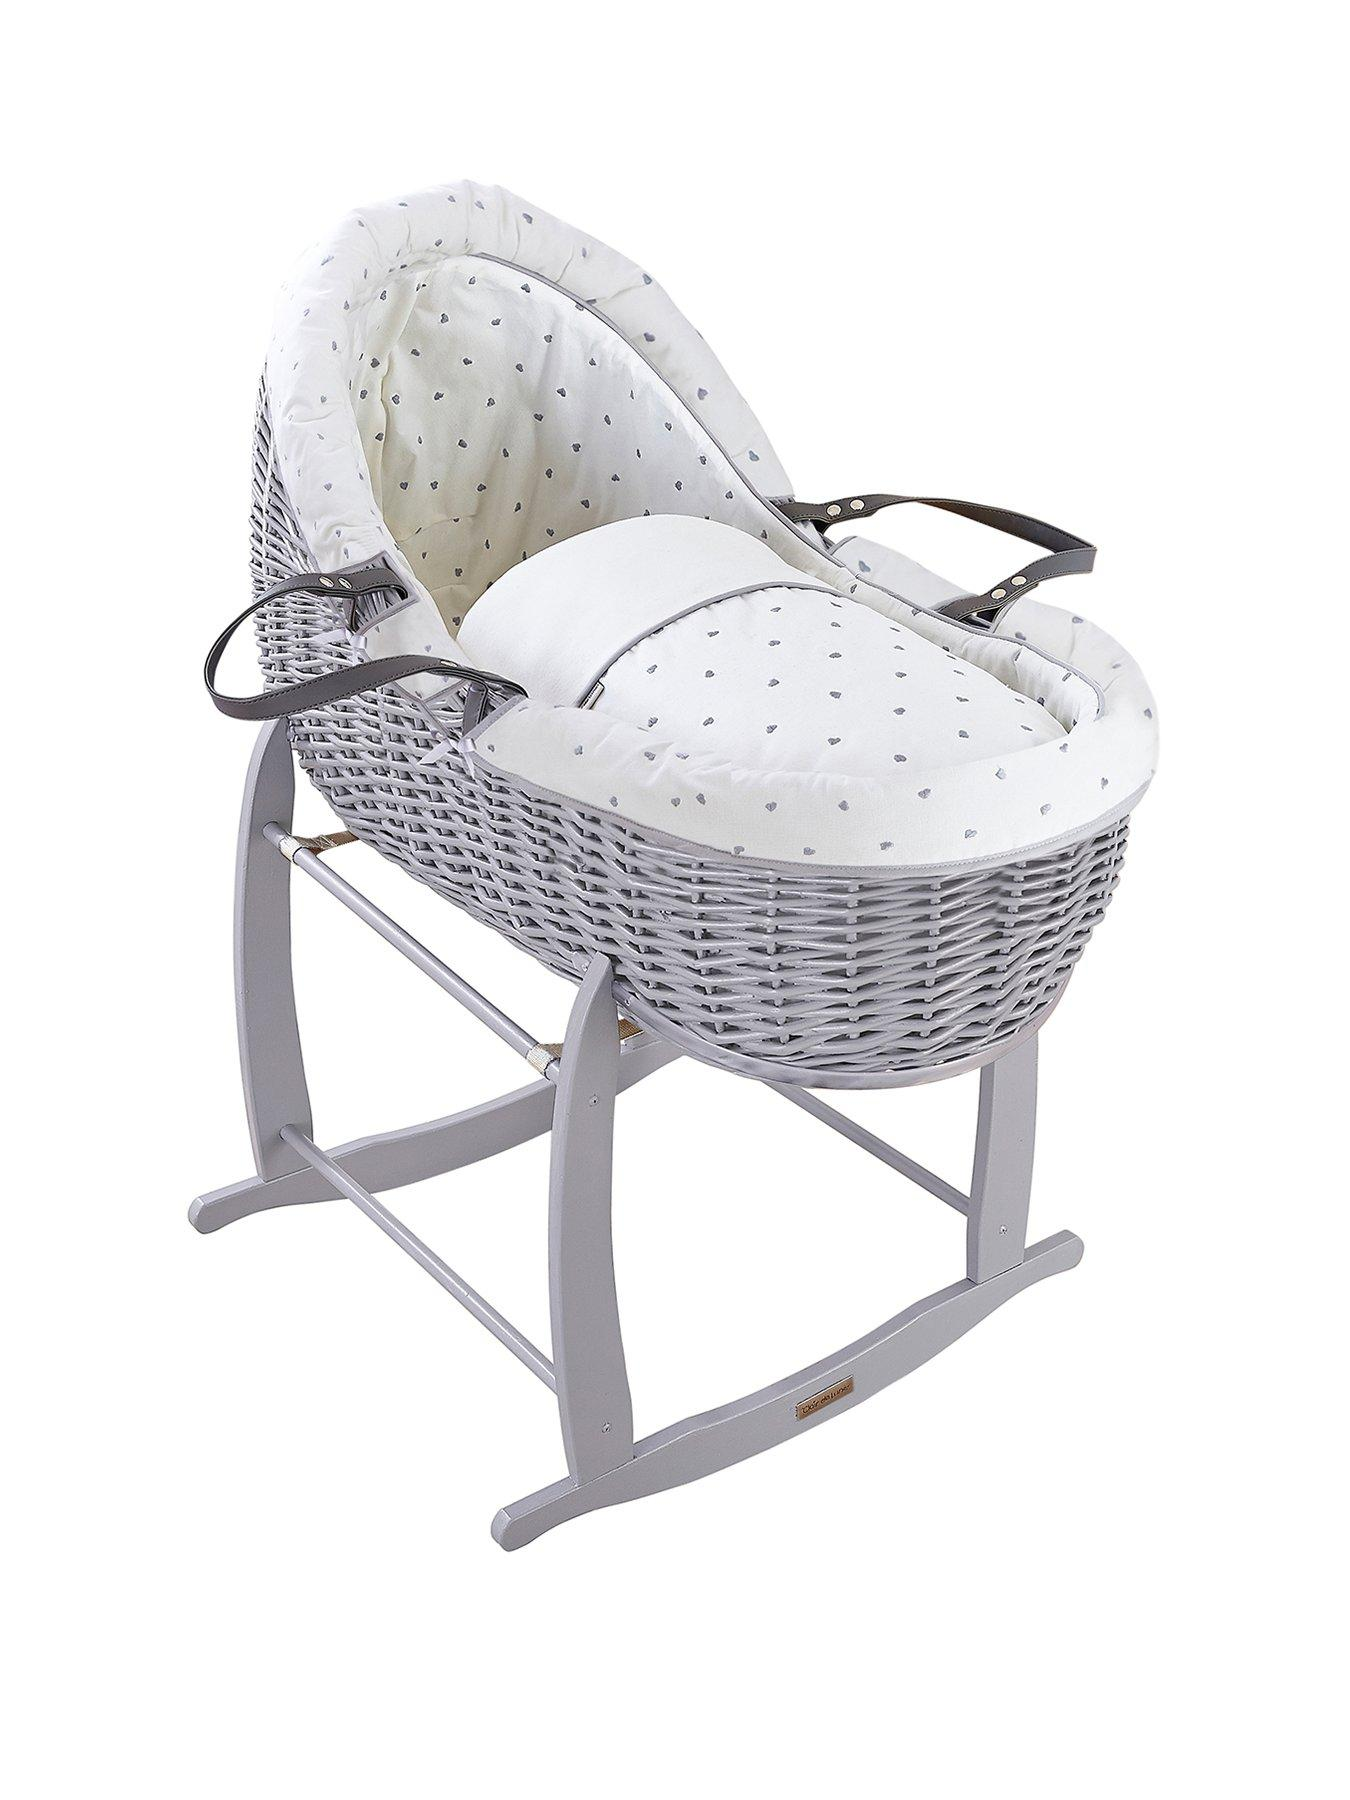 Moses Basket Foam Mattress Bassinet Baby PRAM Oval Fully Breathable Quilted Size 80 X 39 X 3.5 cm